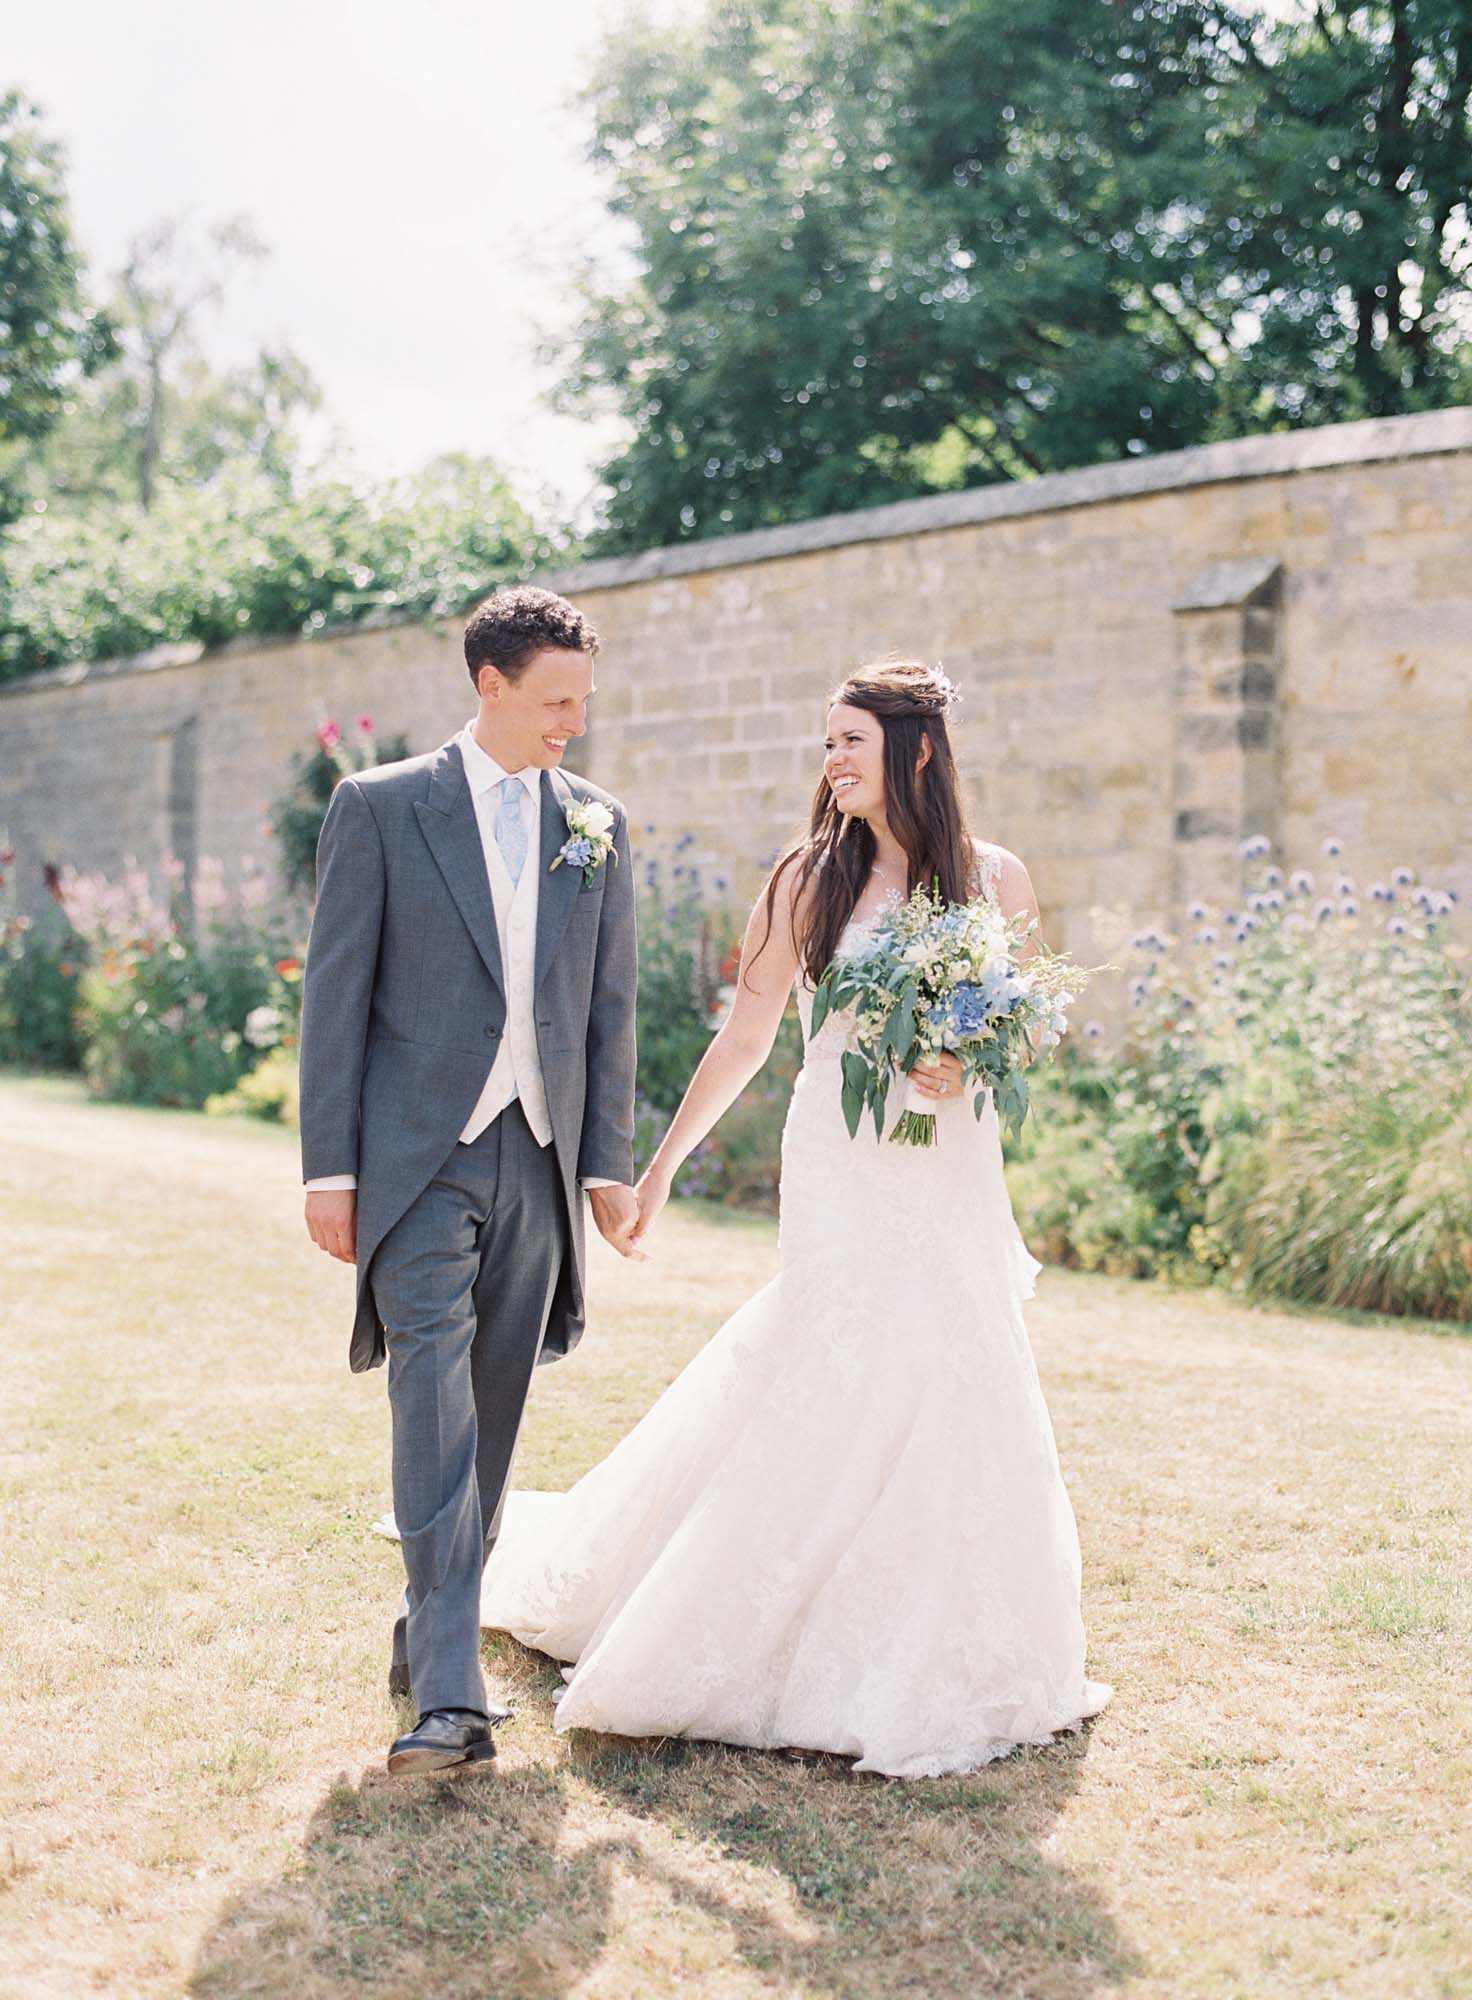 Bride and groom talking and walking hand in hand at Chiddingstone Castle wedding